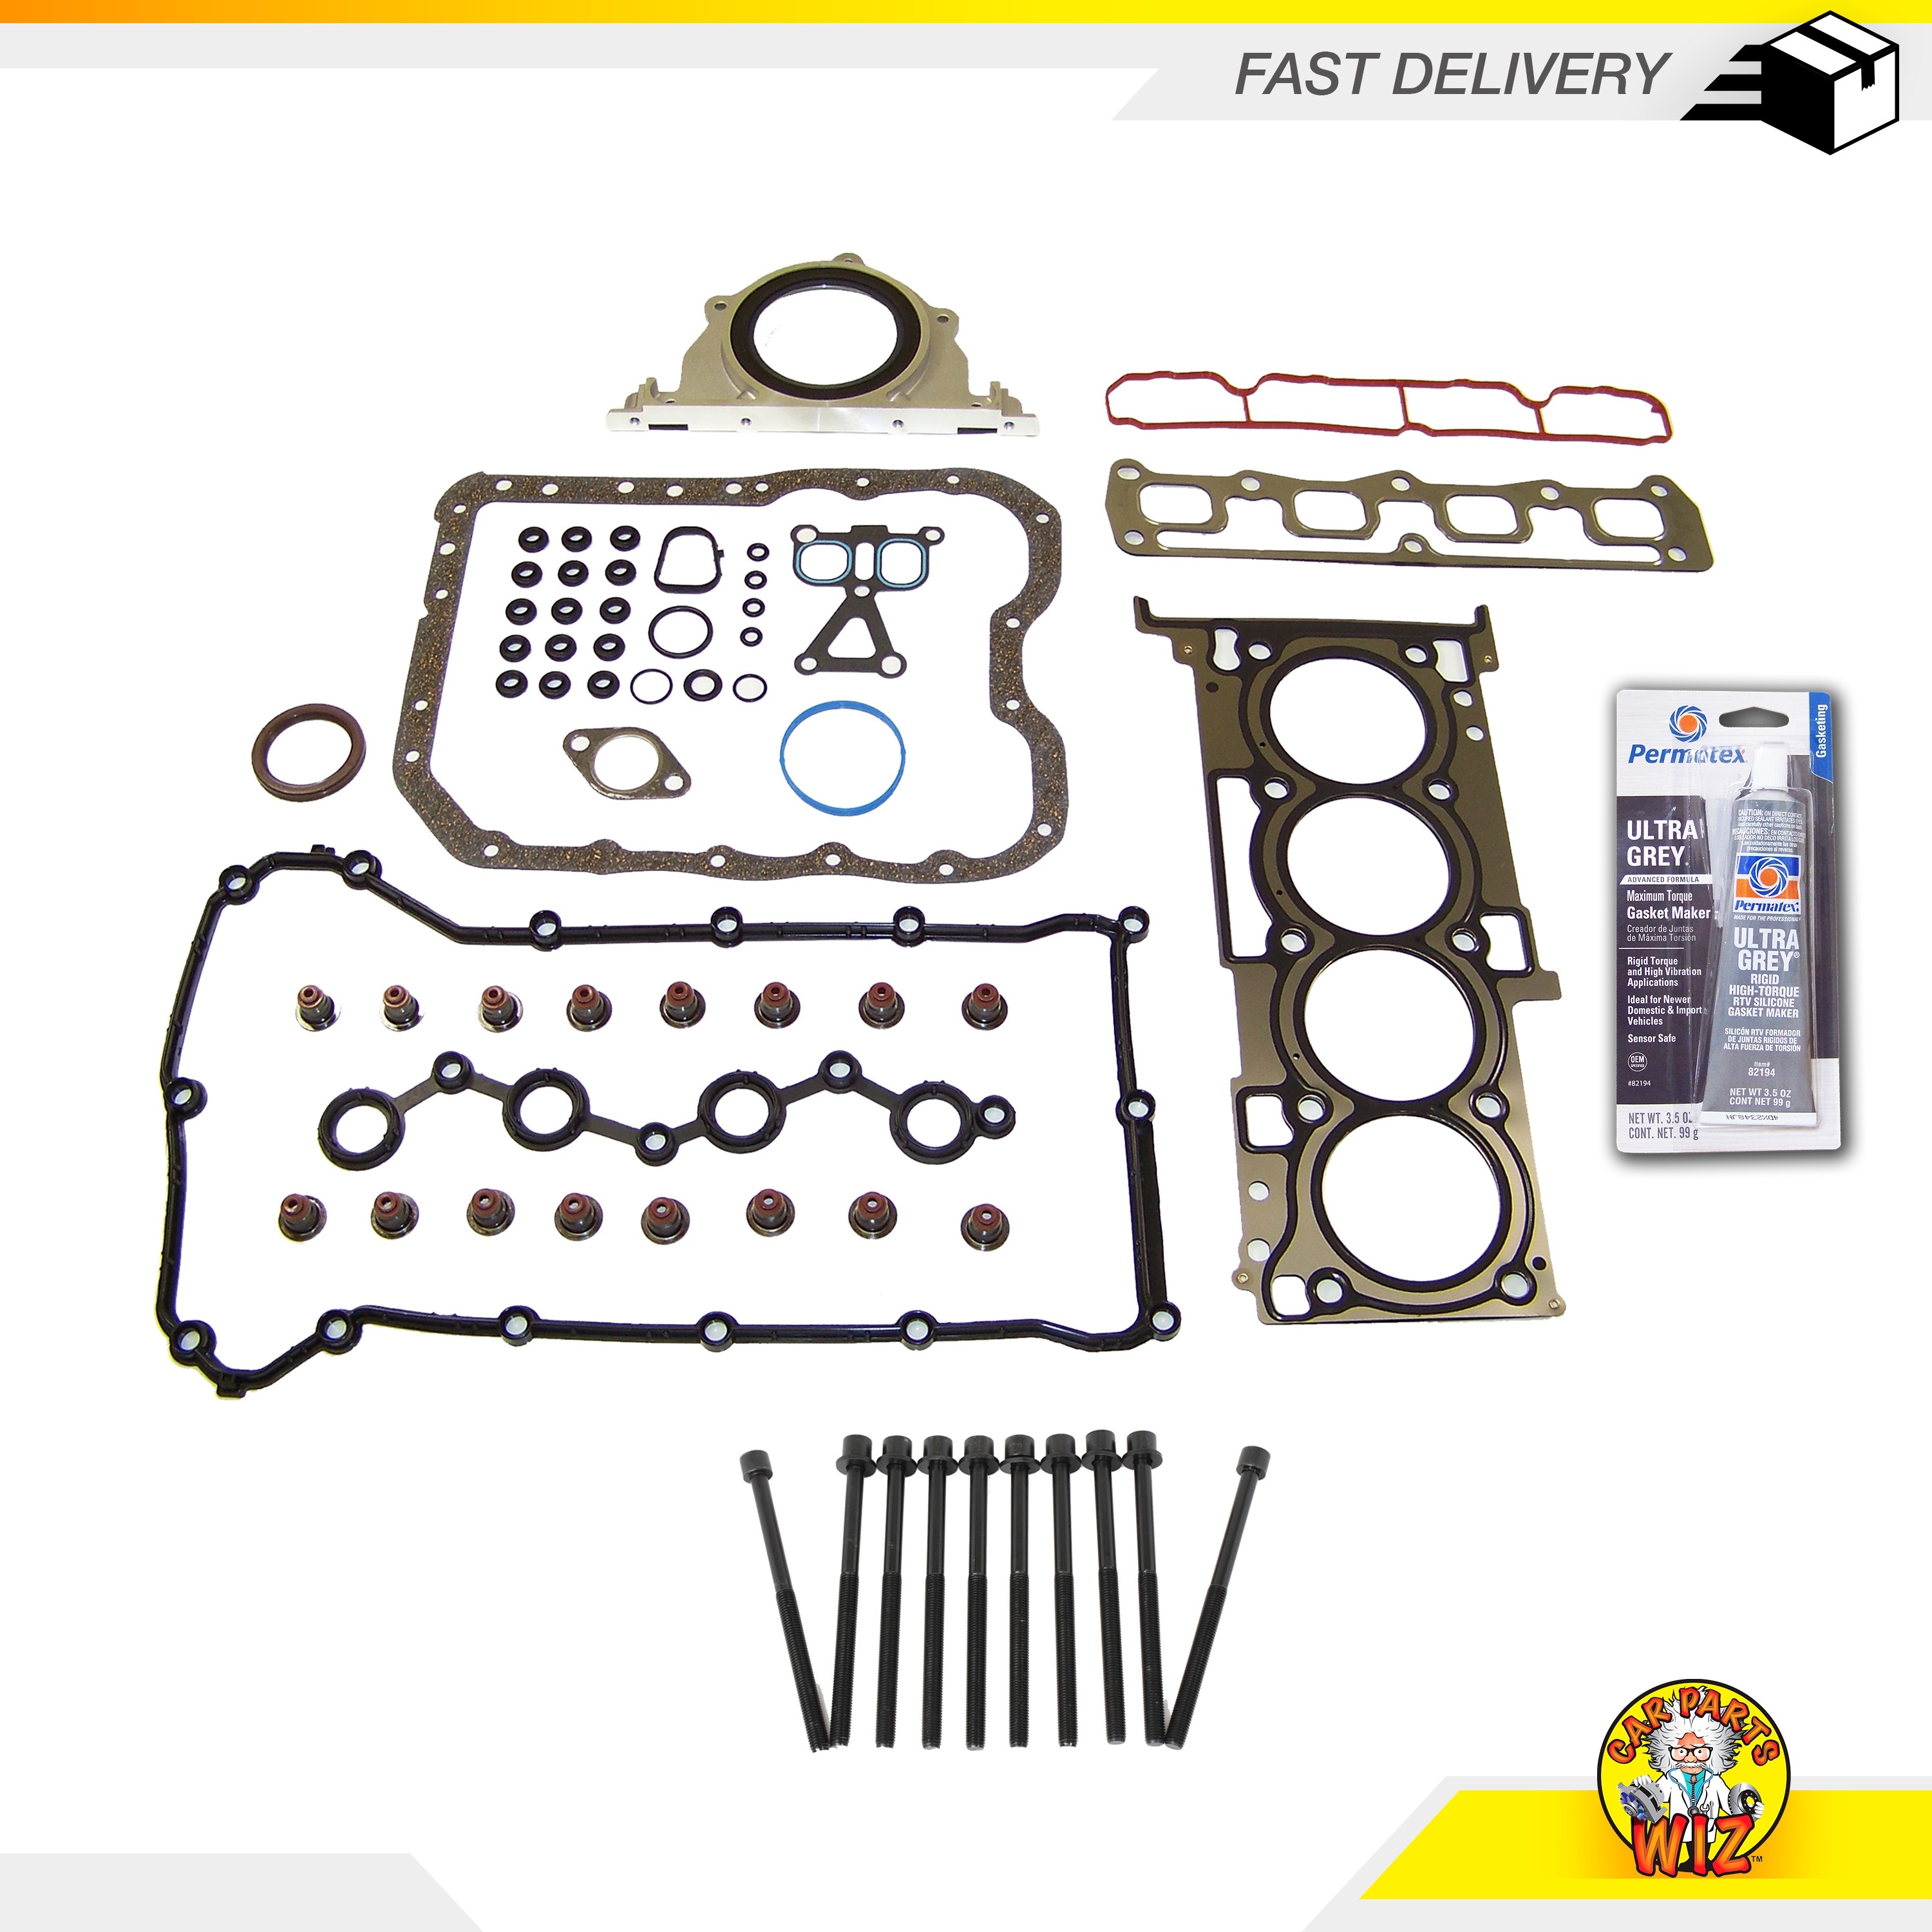 TUPARTS Automotive Head Gasket Sets Replacement for Chrysler 200 2.4 L